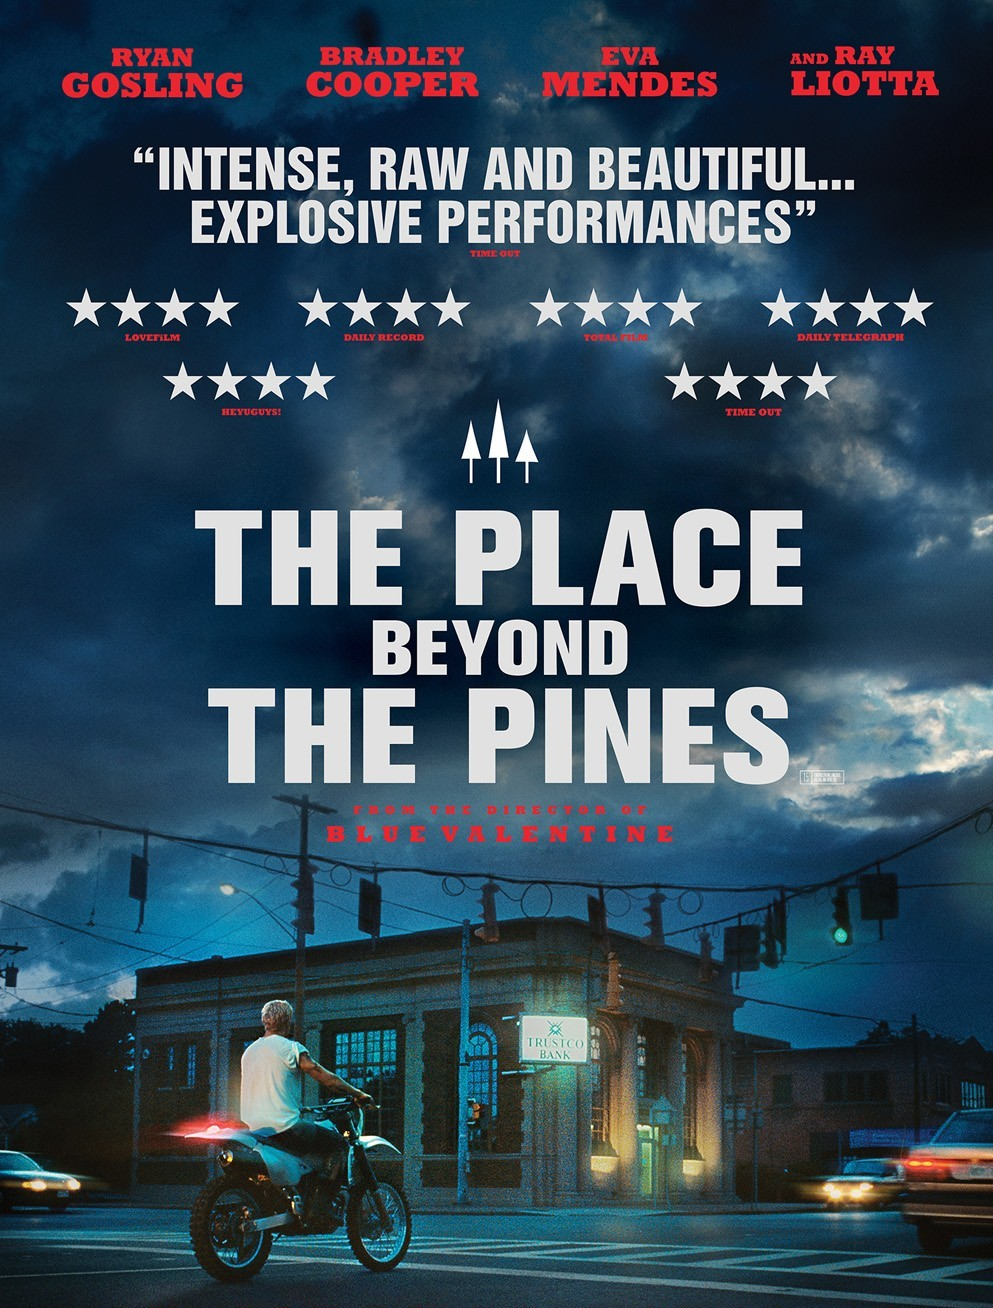 a film analysis of blue valentine by derek cianfrance The new movie from the director of blue valentine is a  the first film by derek cianfrance,  cianfrance's ambitious new film, the place beyond the pines,.